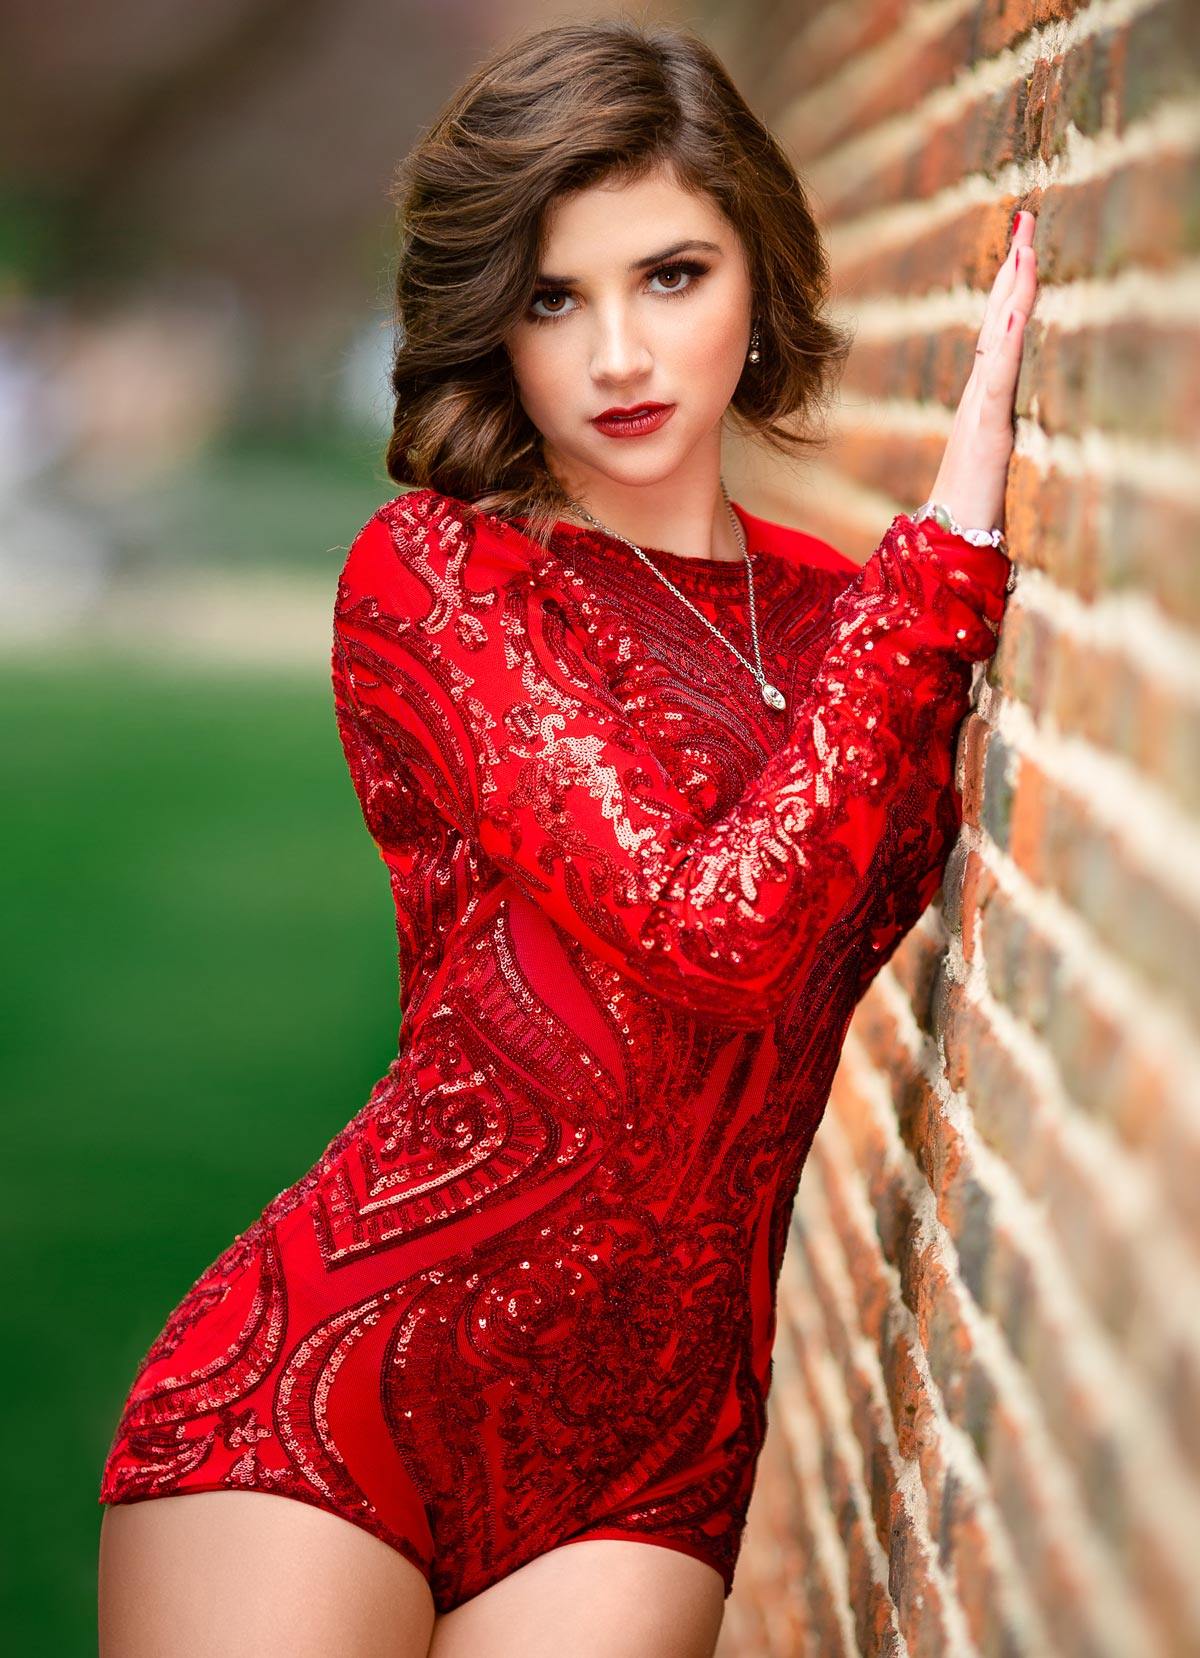 A beautiful young girl in a red sequin bodice leaning agains a brick wall, A blonde girl in a park full of roses in a red dress, photography by Nukemedia